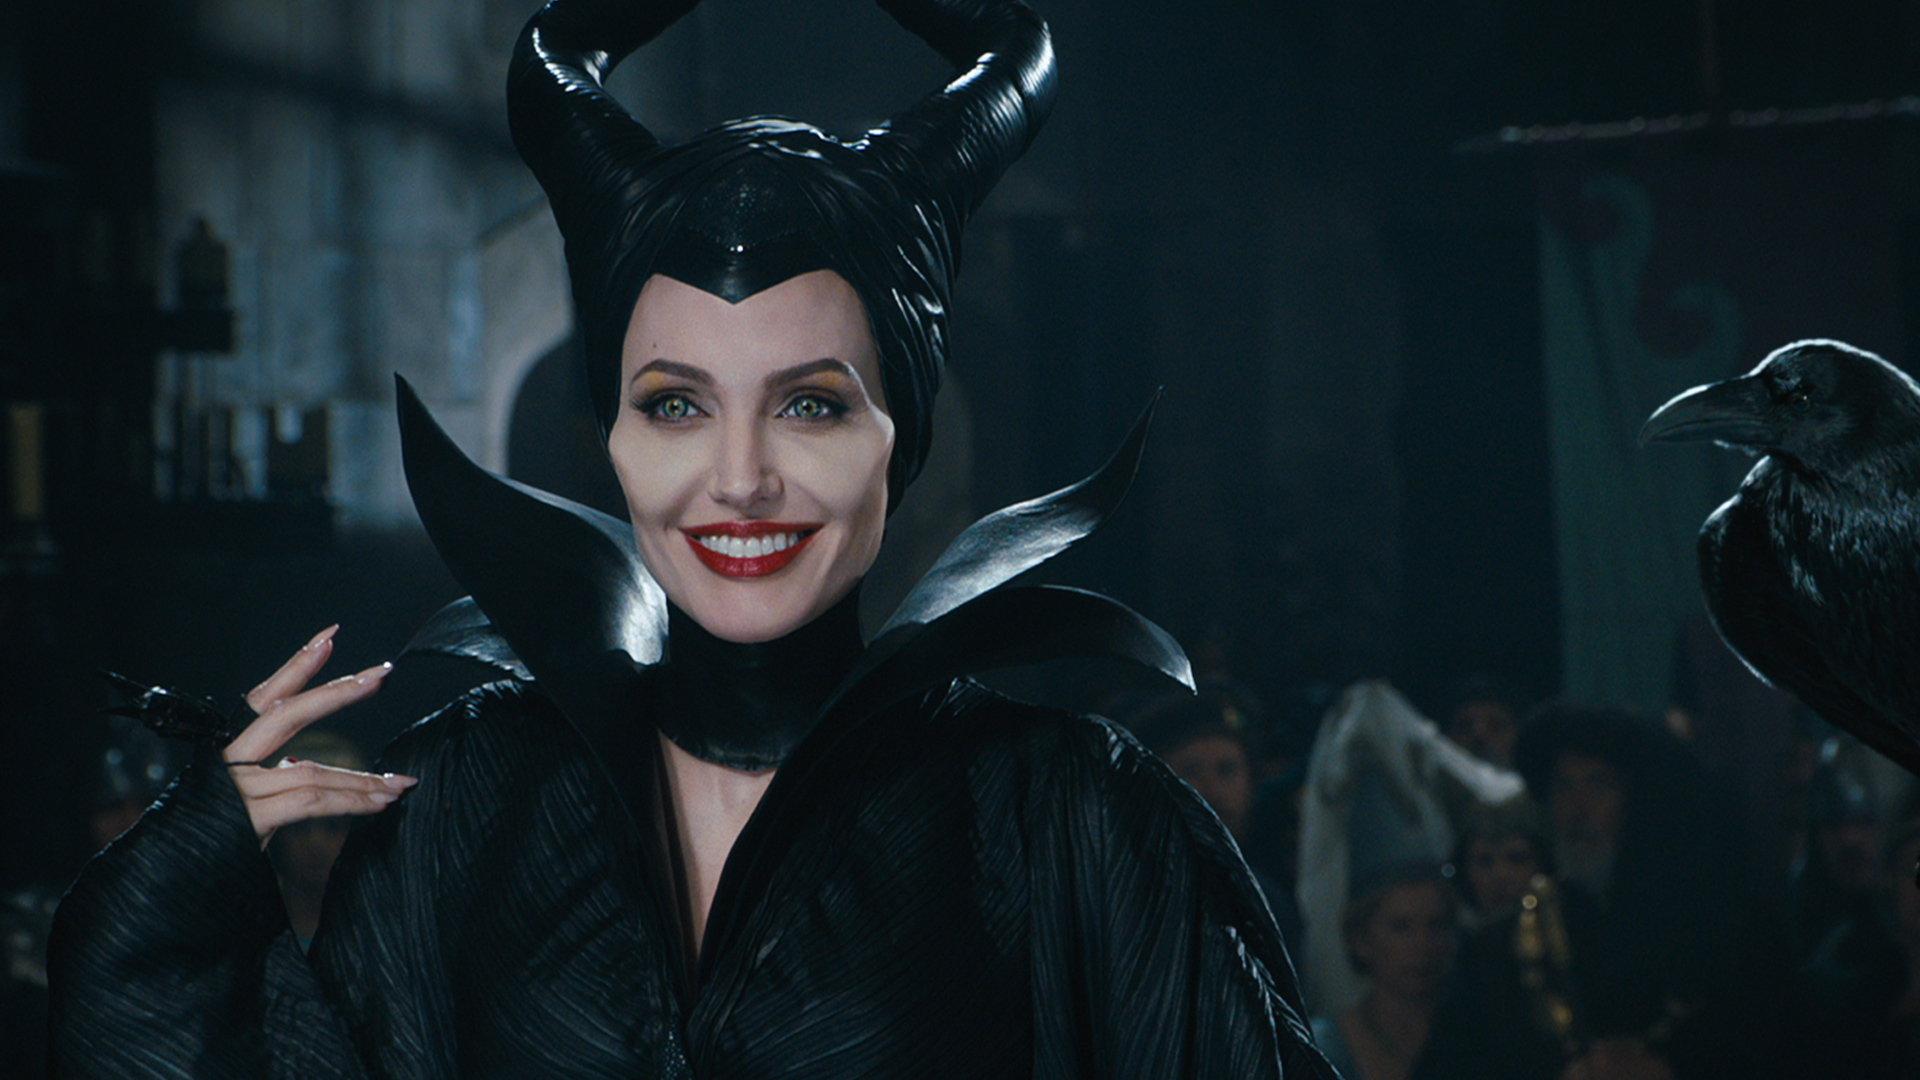 Maleficent Wallpaper 28400 1920x1080 px HDWallSourcecom